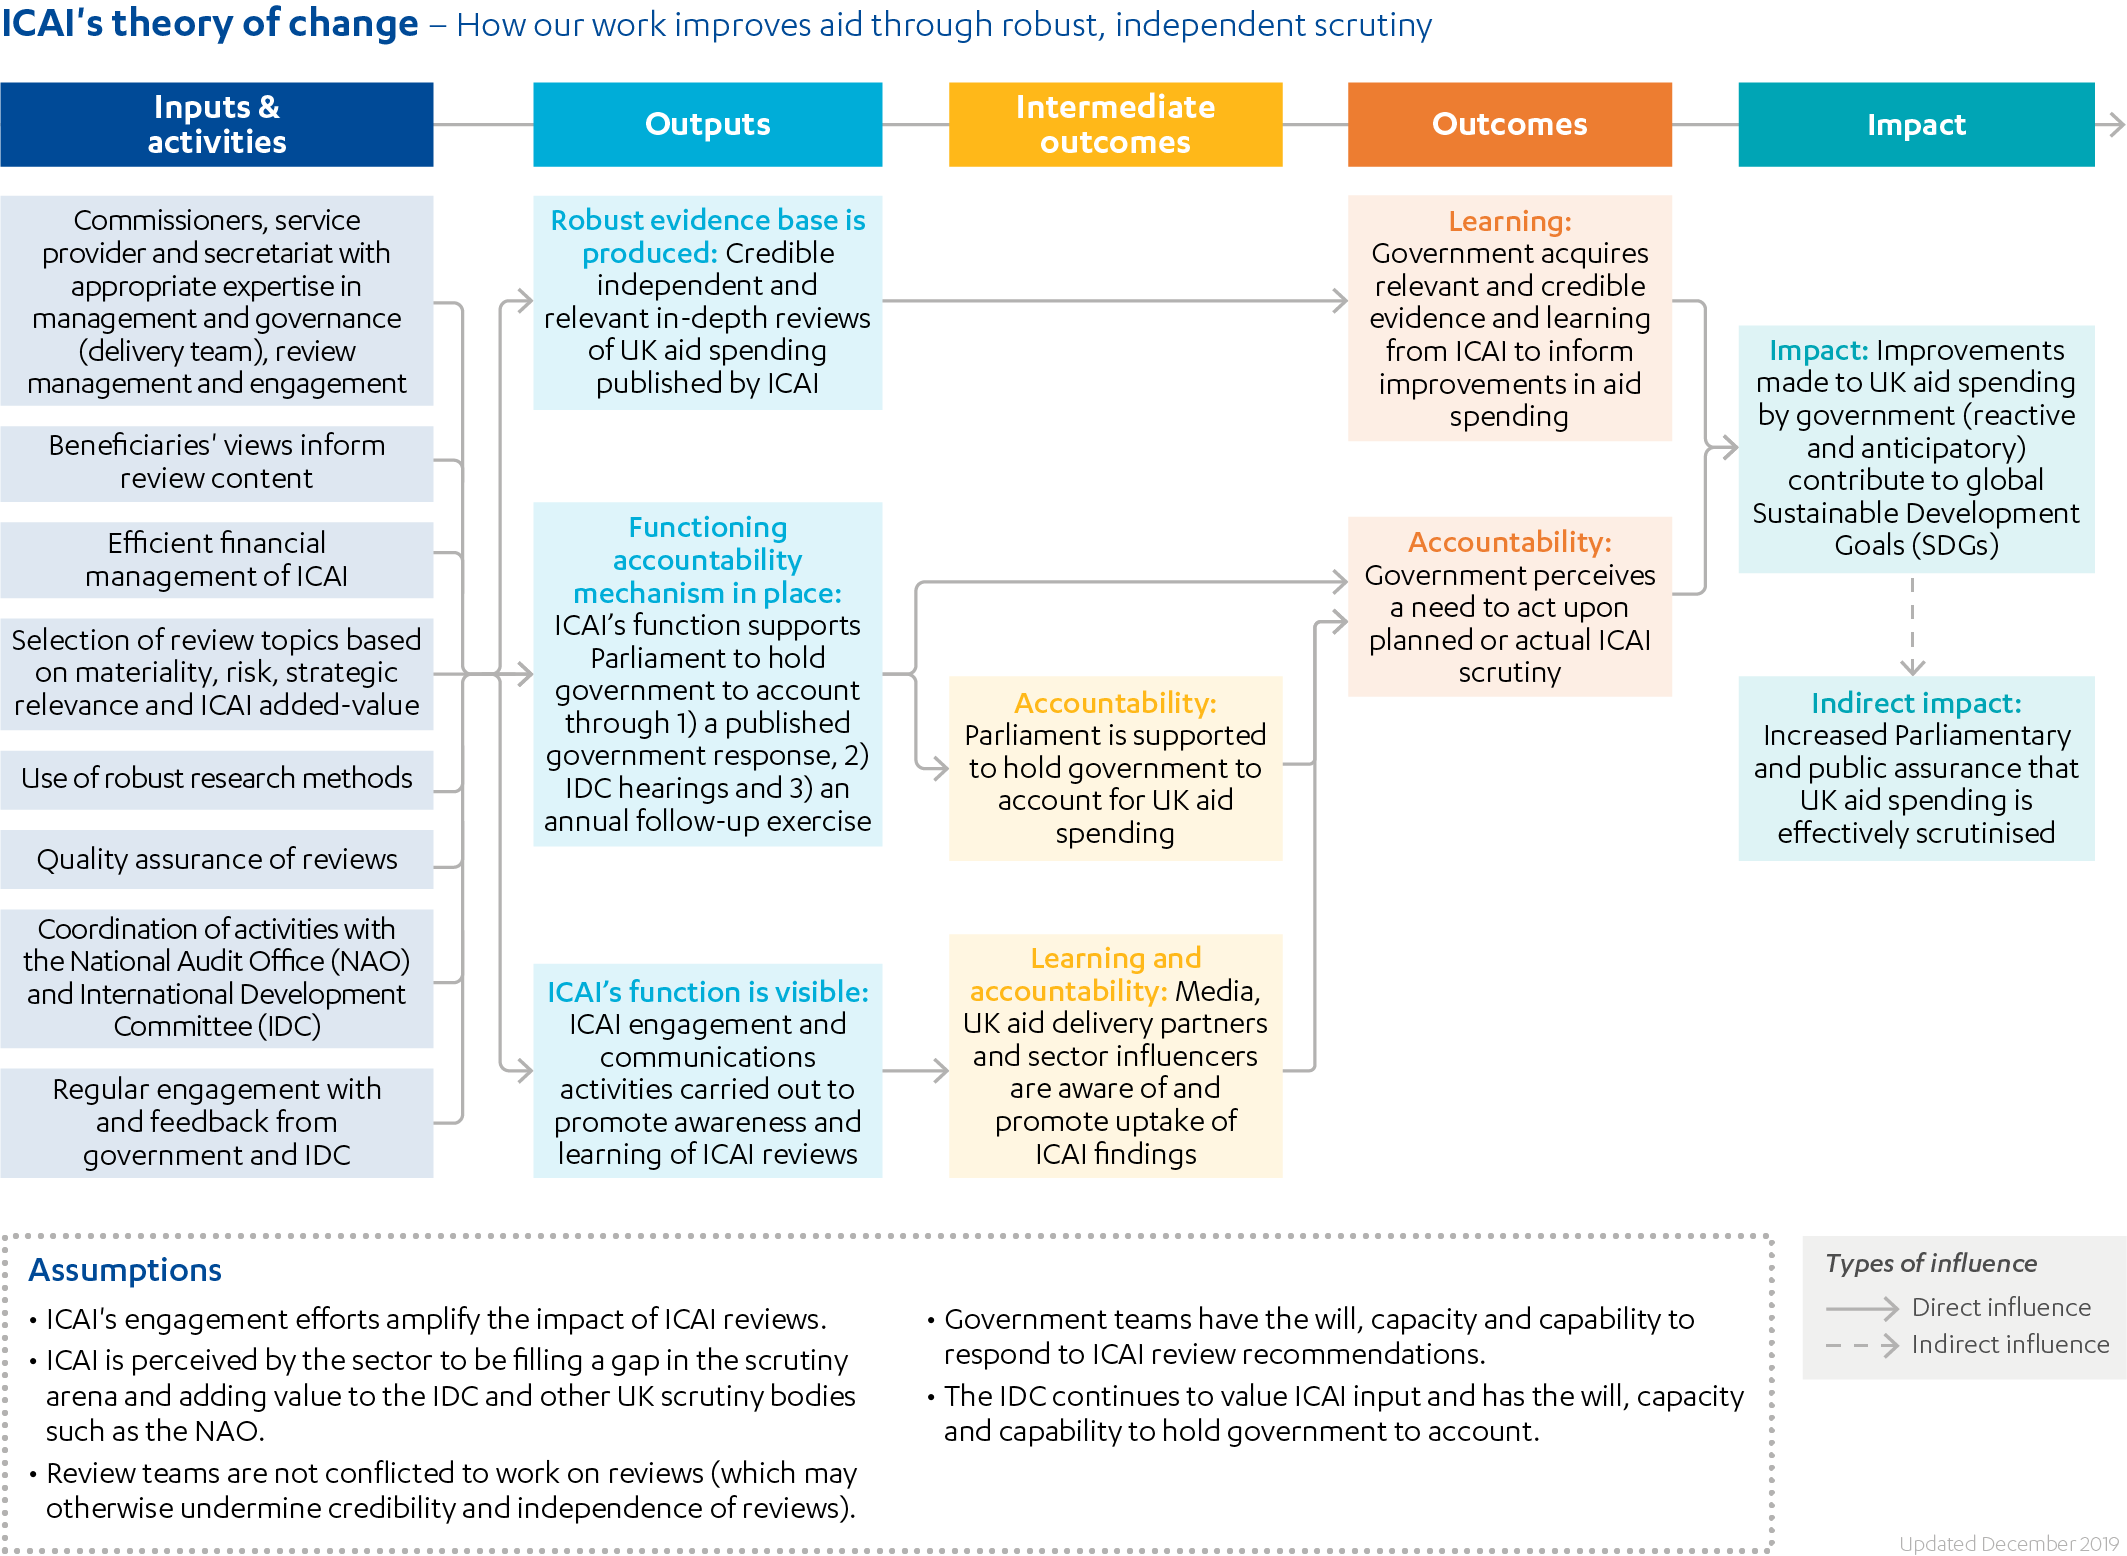 ICAI's Theory of Change showing how ICAI's work improves aid, from inputs and activities through to outcomes and impact